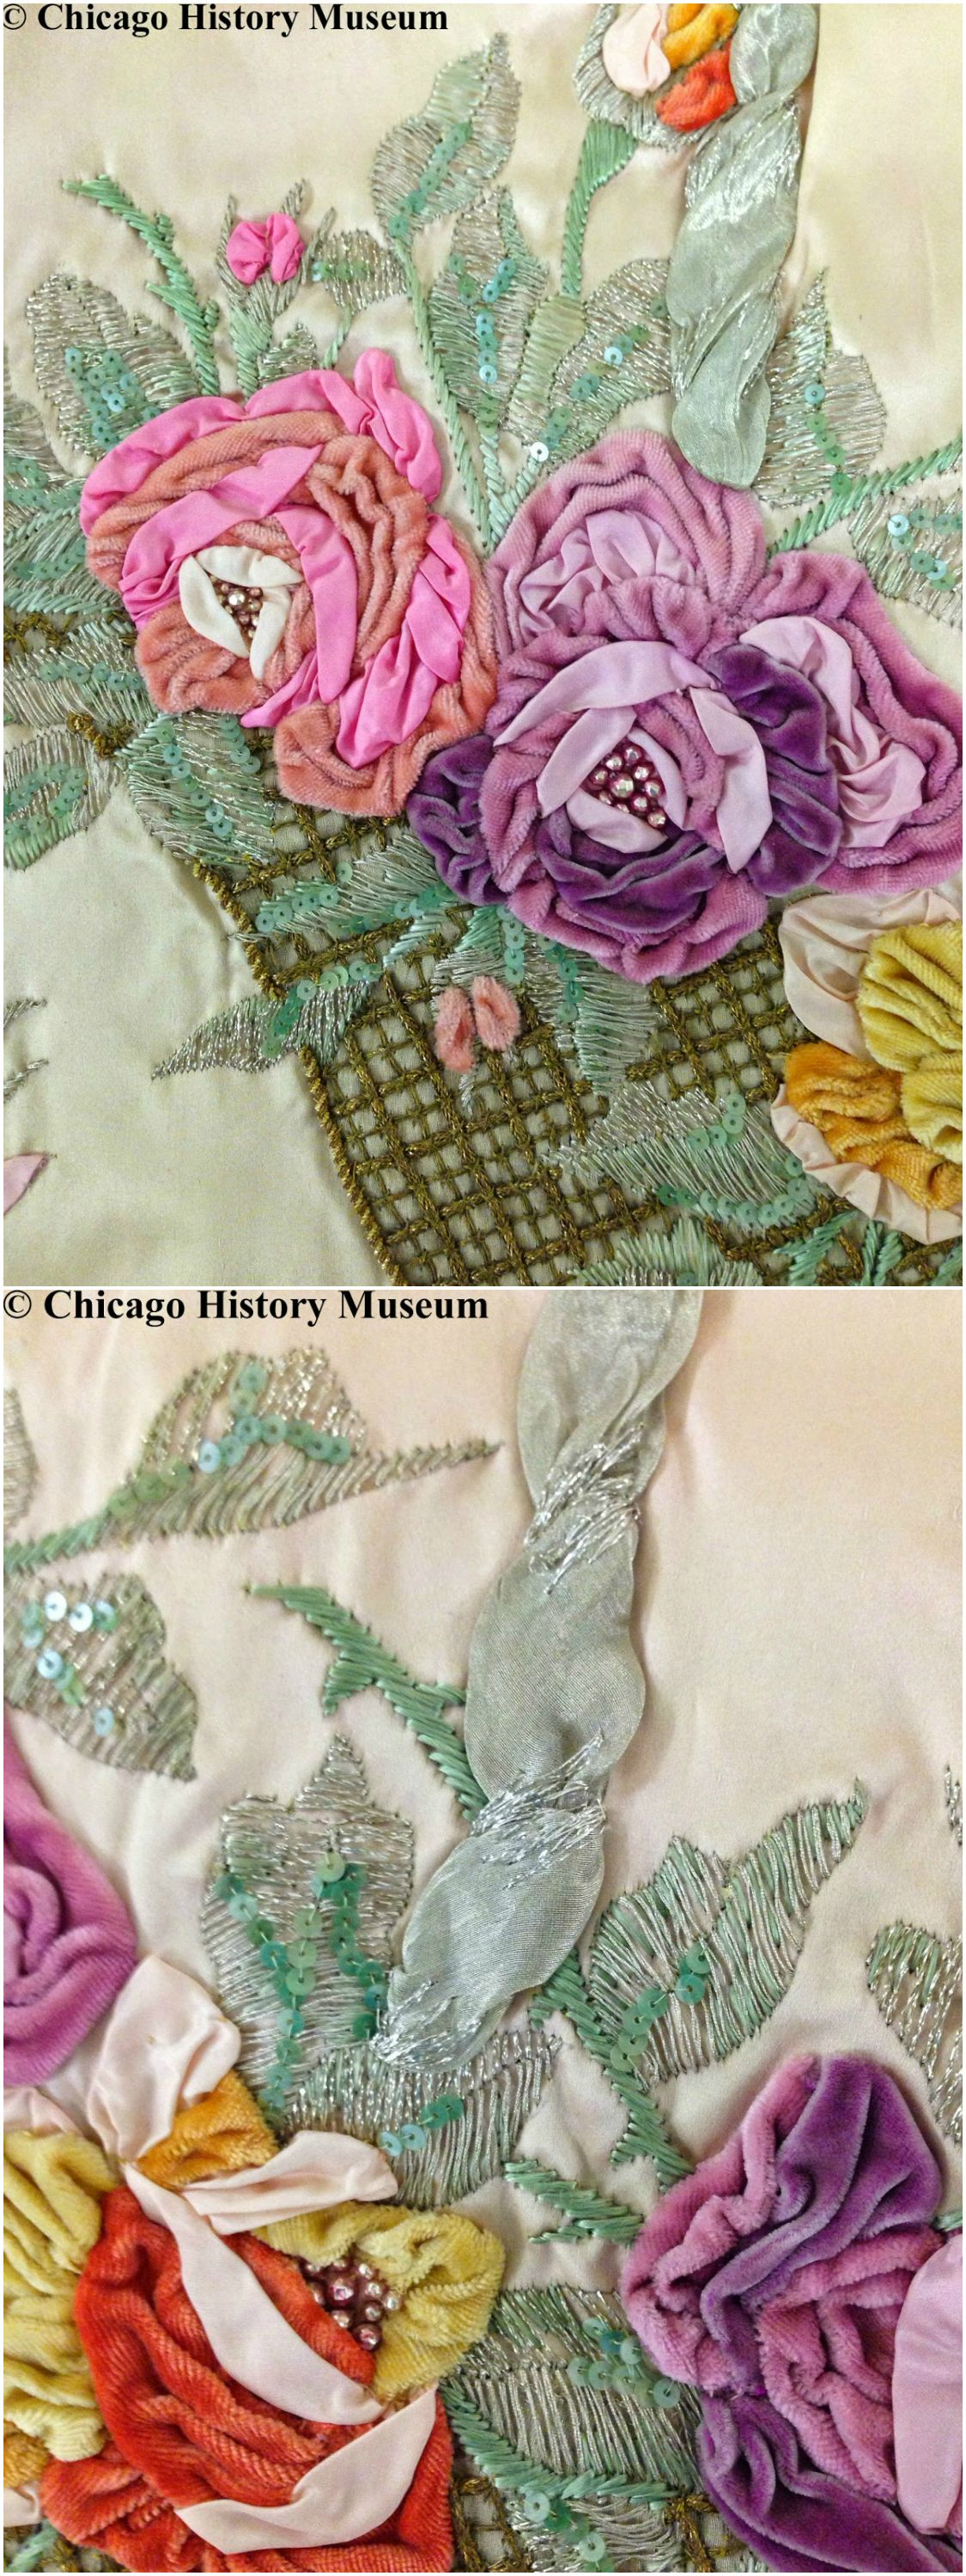 Detail shots of court presentation gown and train, by Jacques Doucet, 1926, collection of the Chicago History Museum. Worn by Mary Dudley Kenna. Photos by Katy Werlin on The Fashion Historian Blog.